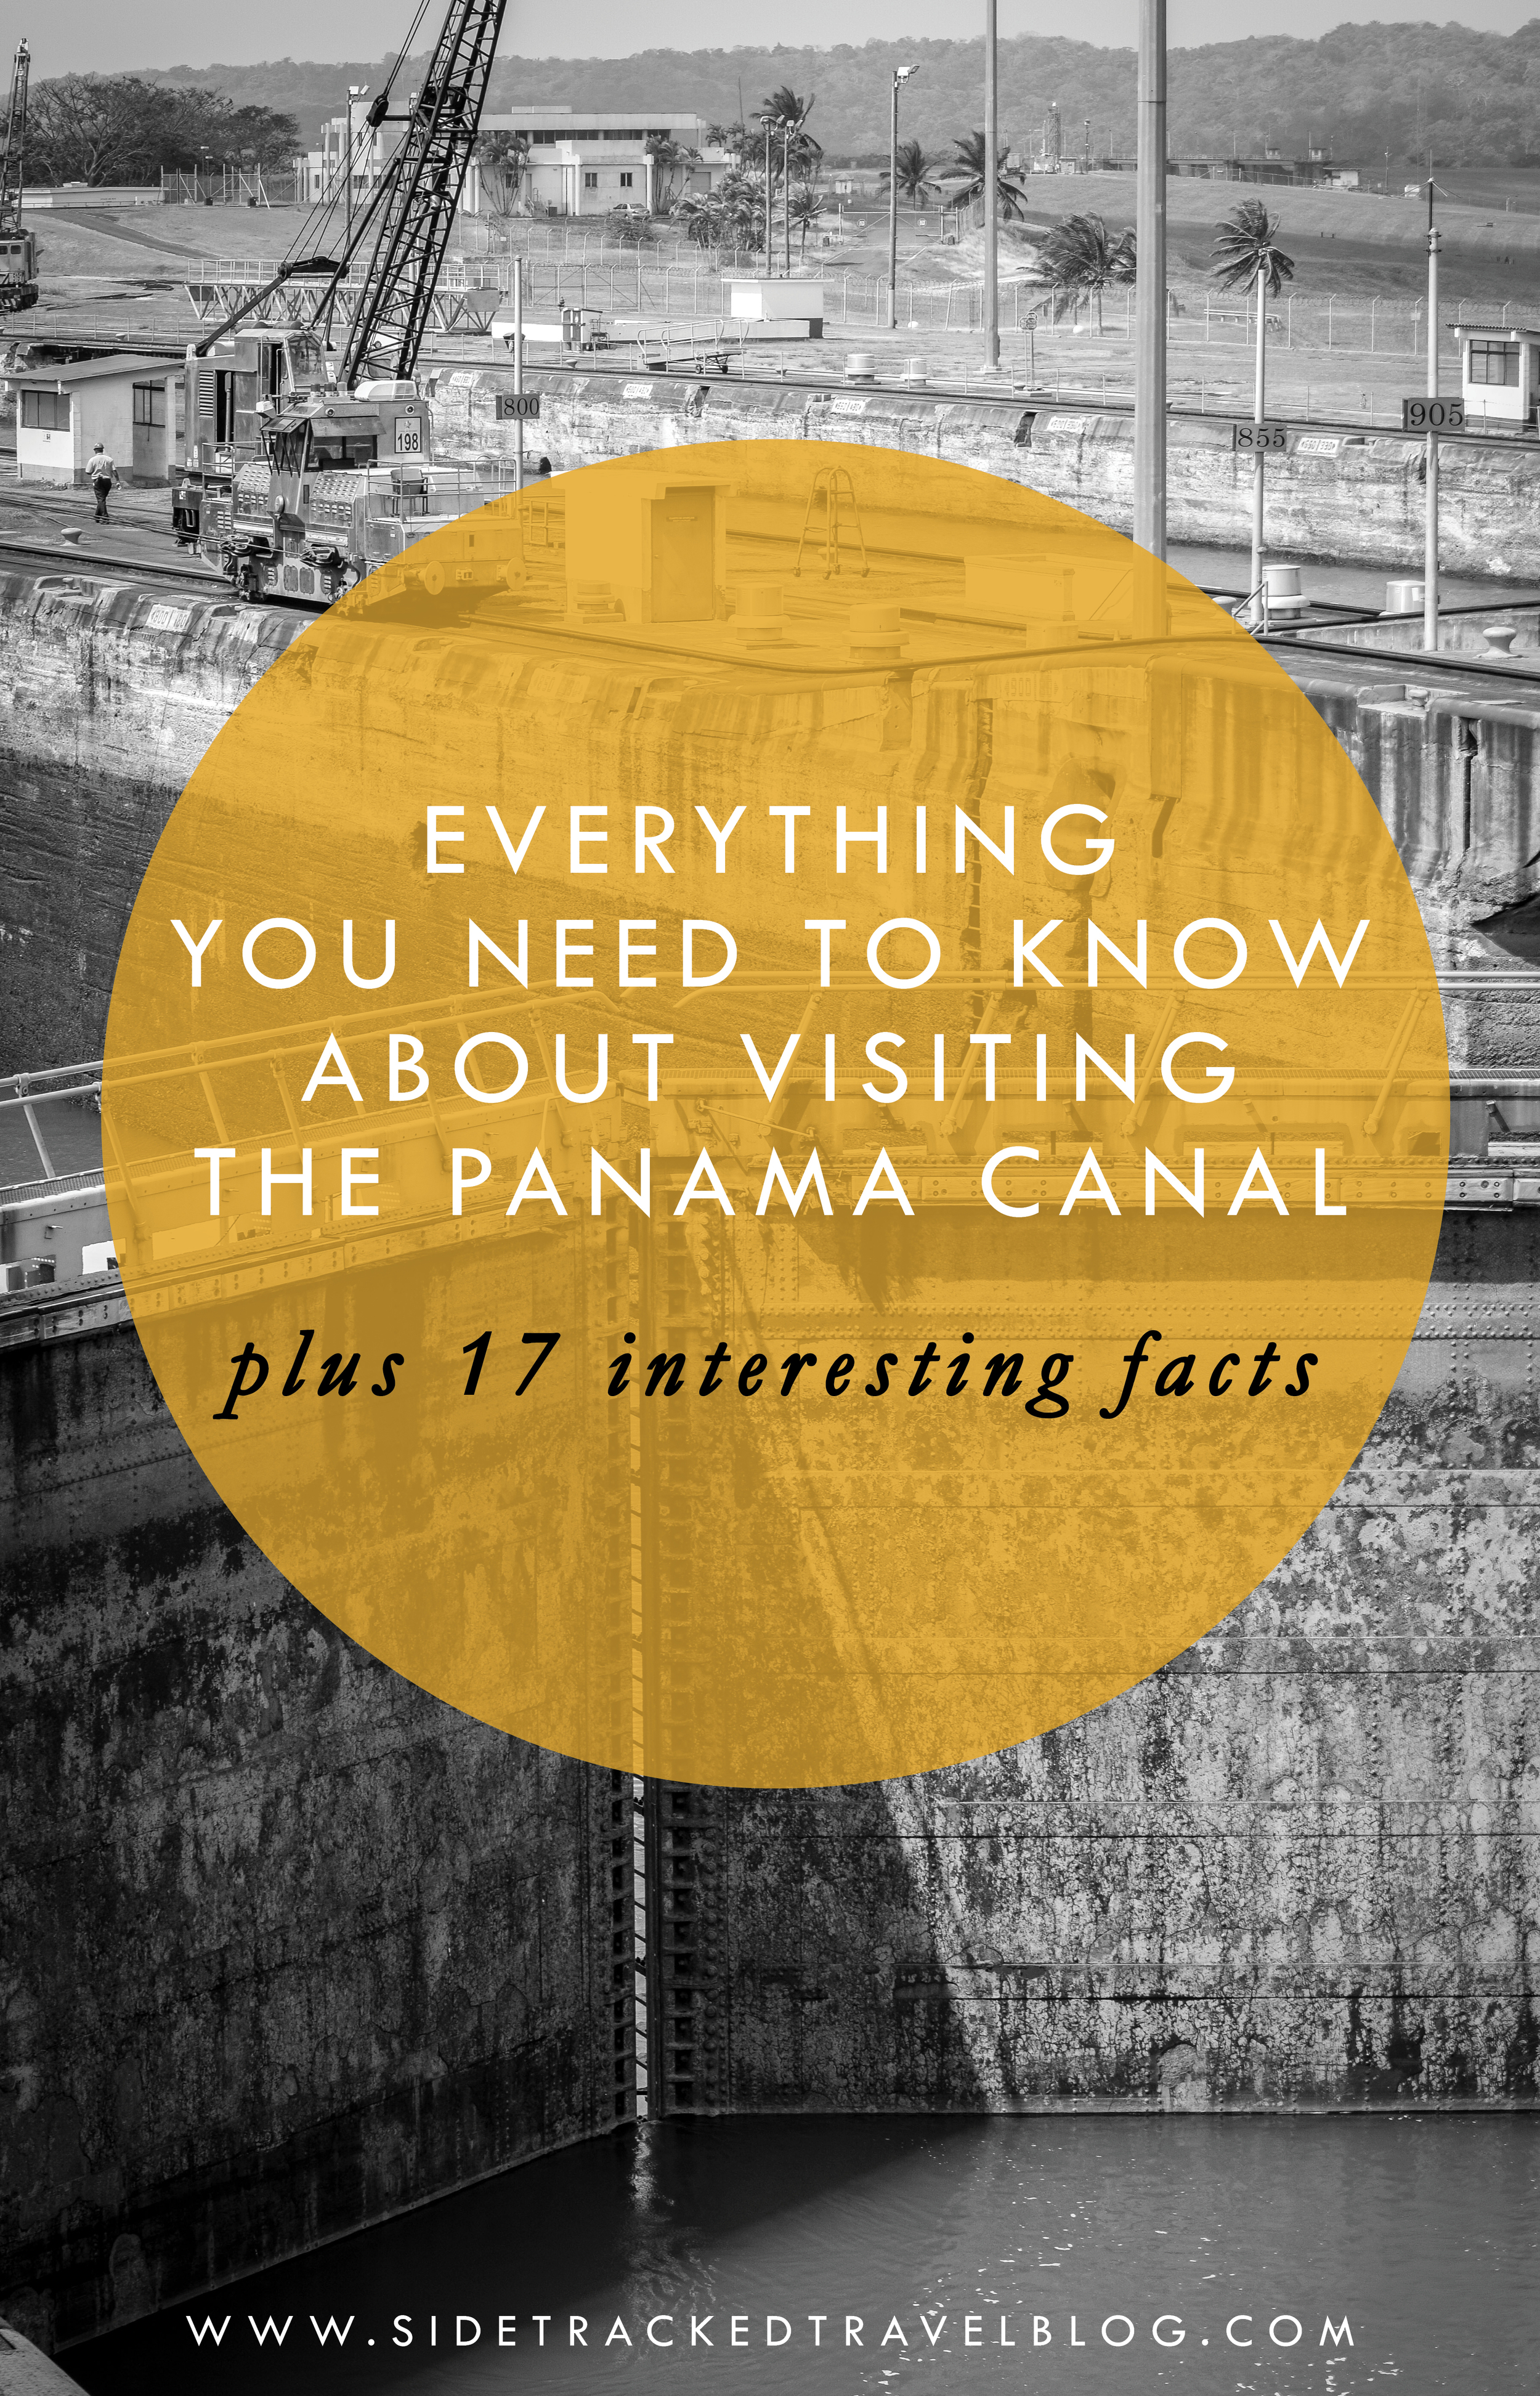 Planning a trip to Panama? Then you need to read this post full of interesting facts and useful information about the country's #1 attraction, the Panama Canal.